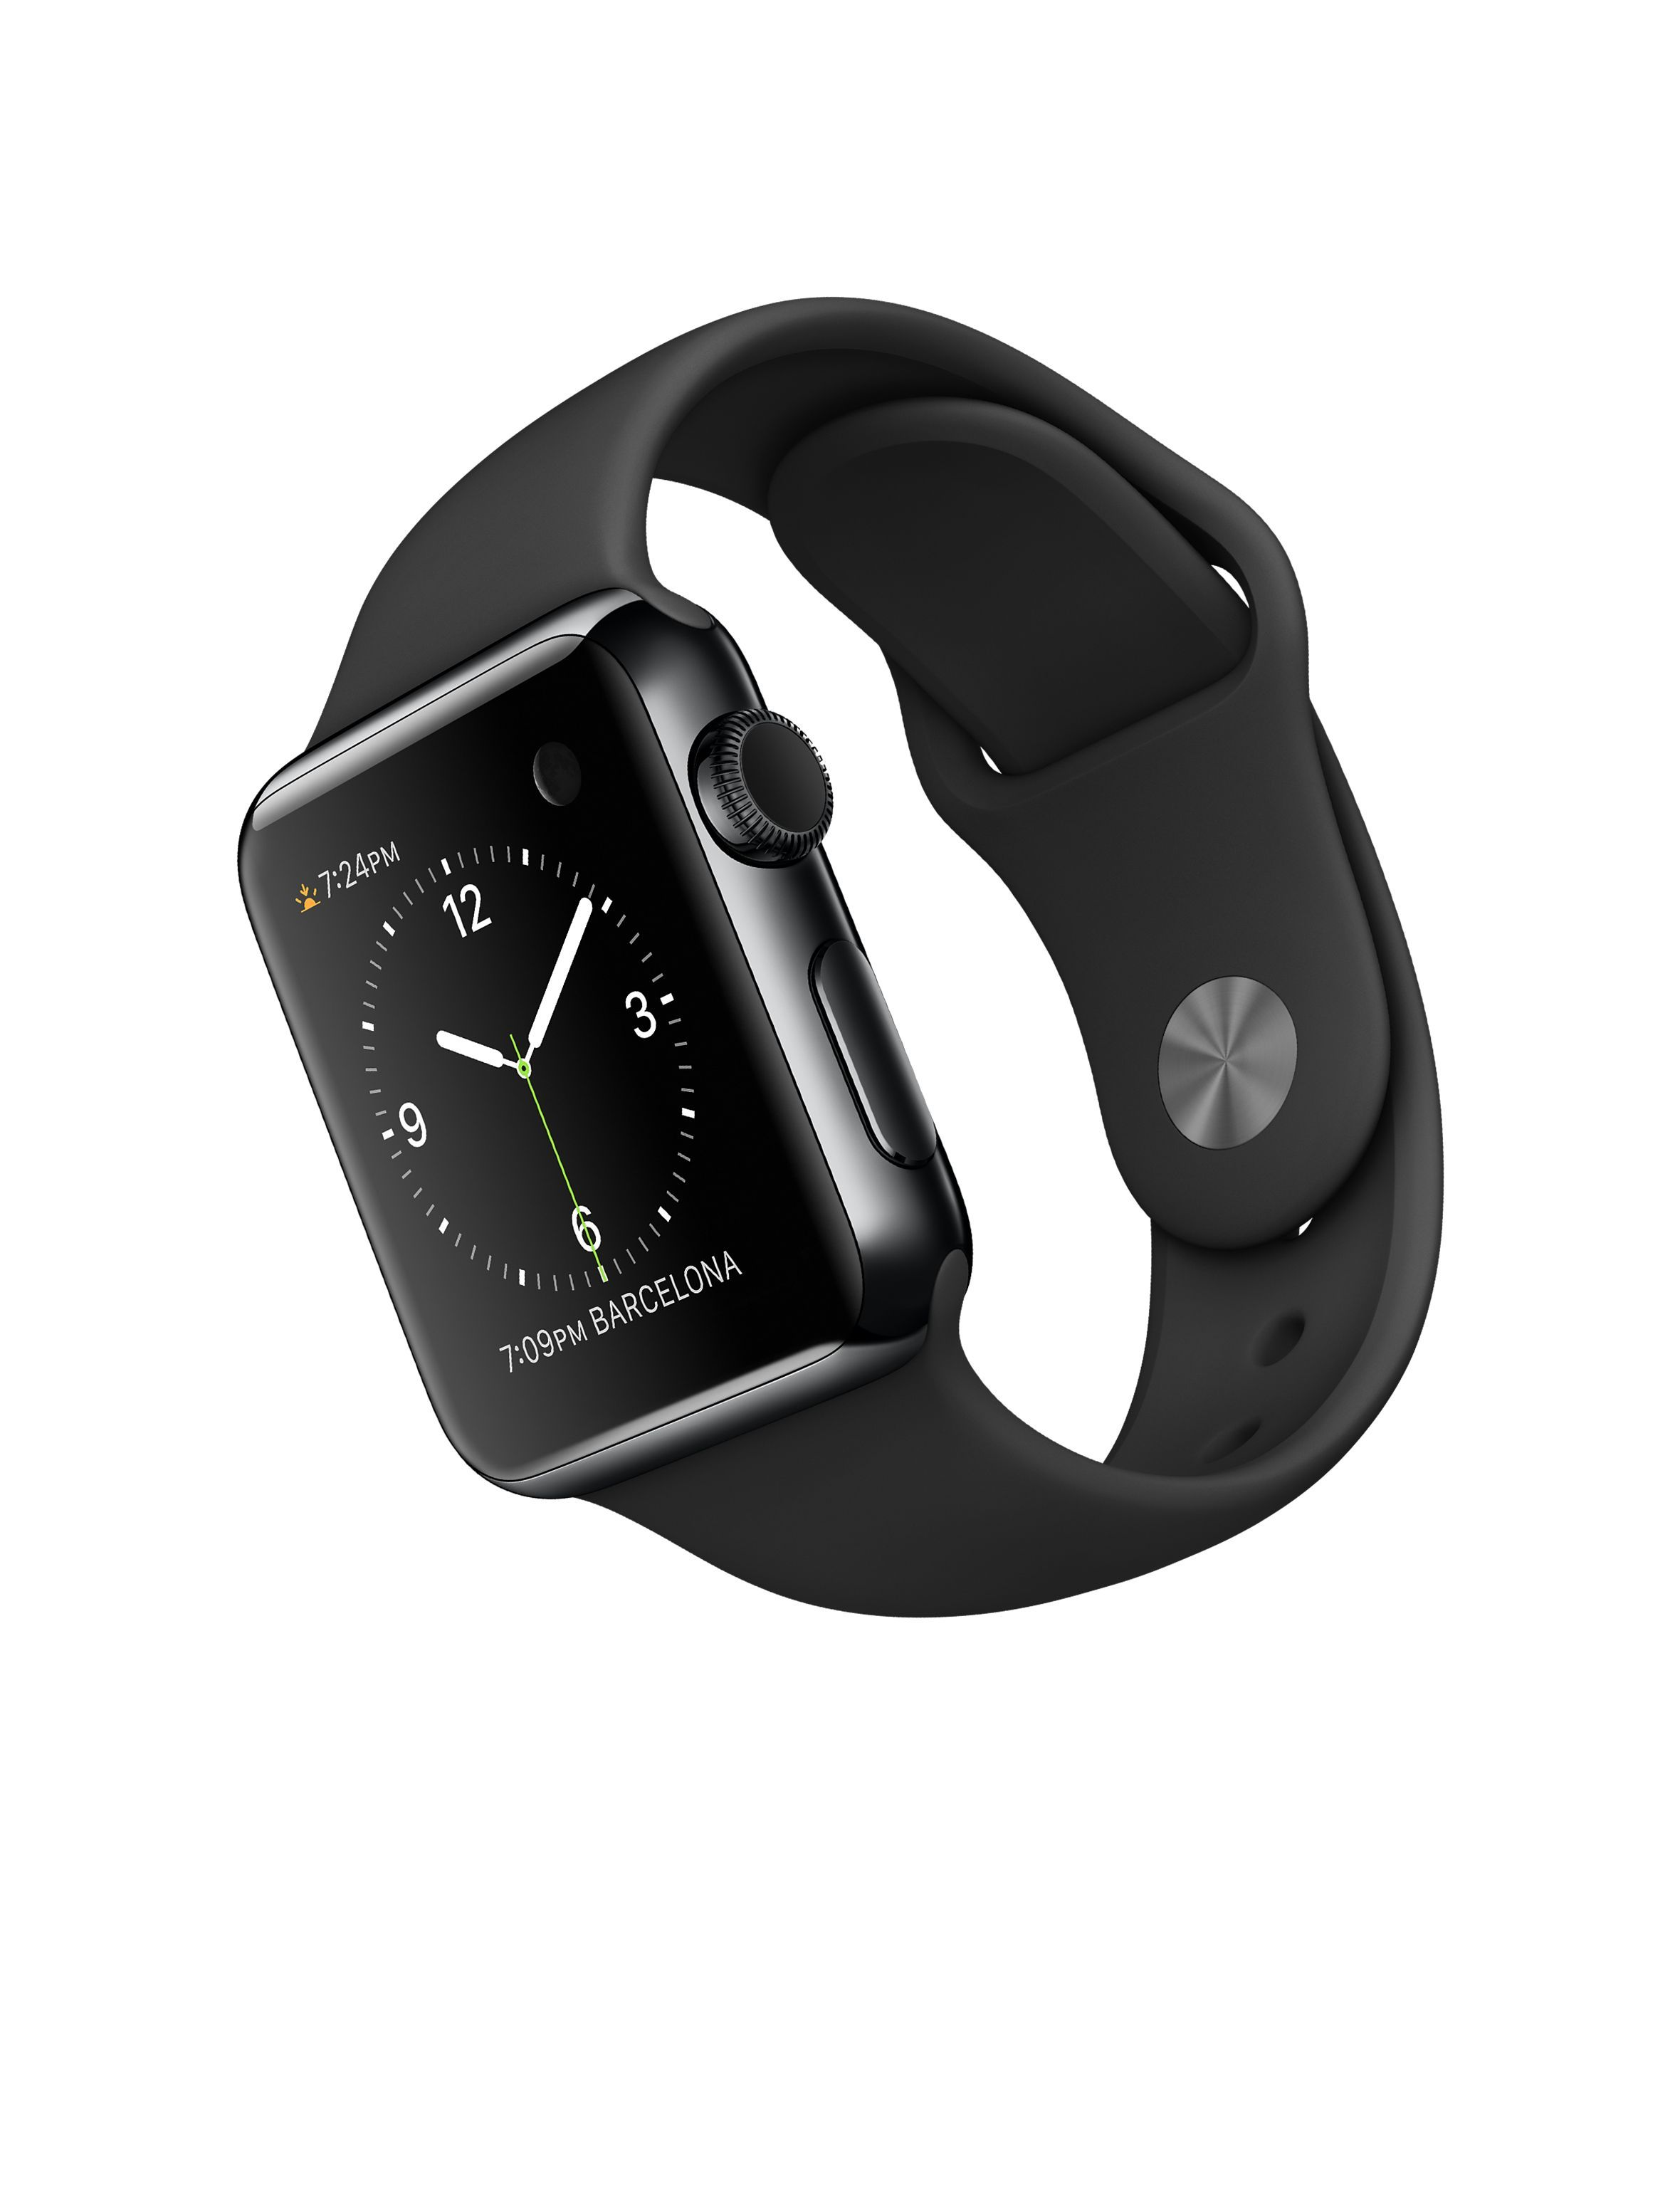 Apple Watch 38mm Space Black Stainless Steel Case with